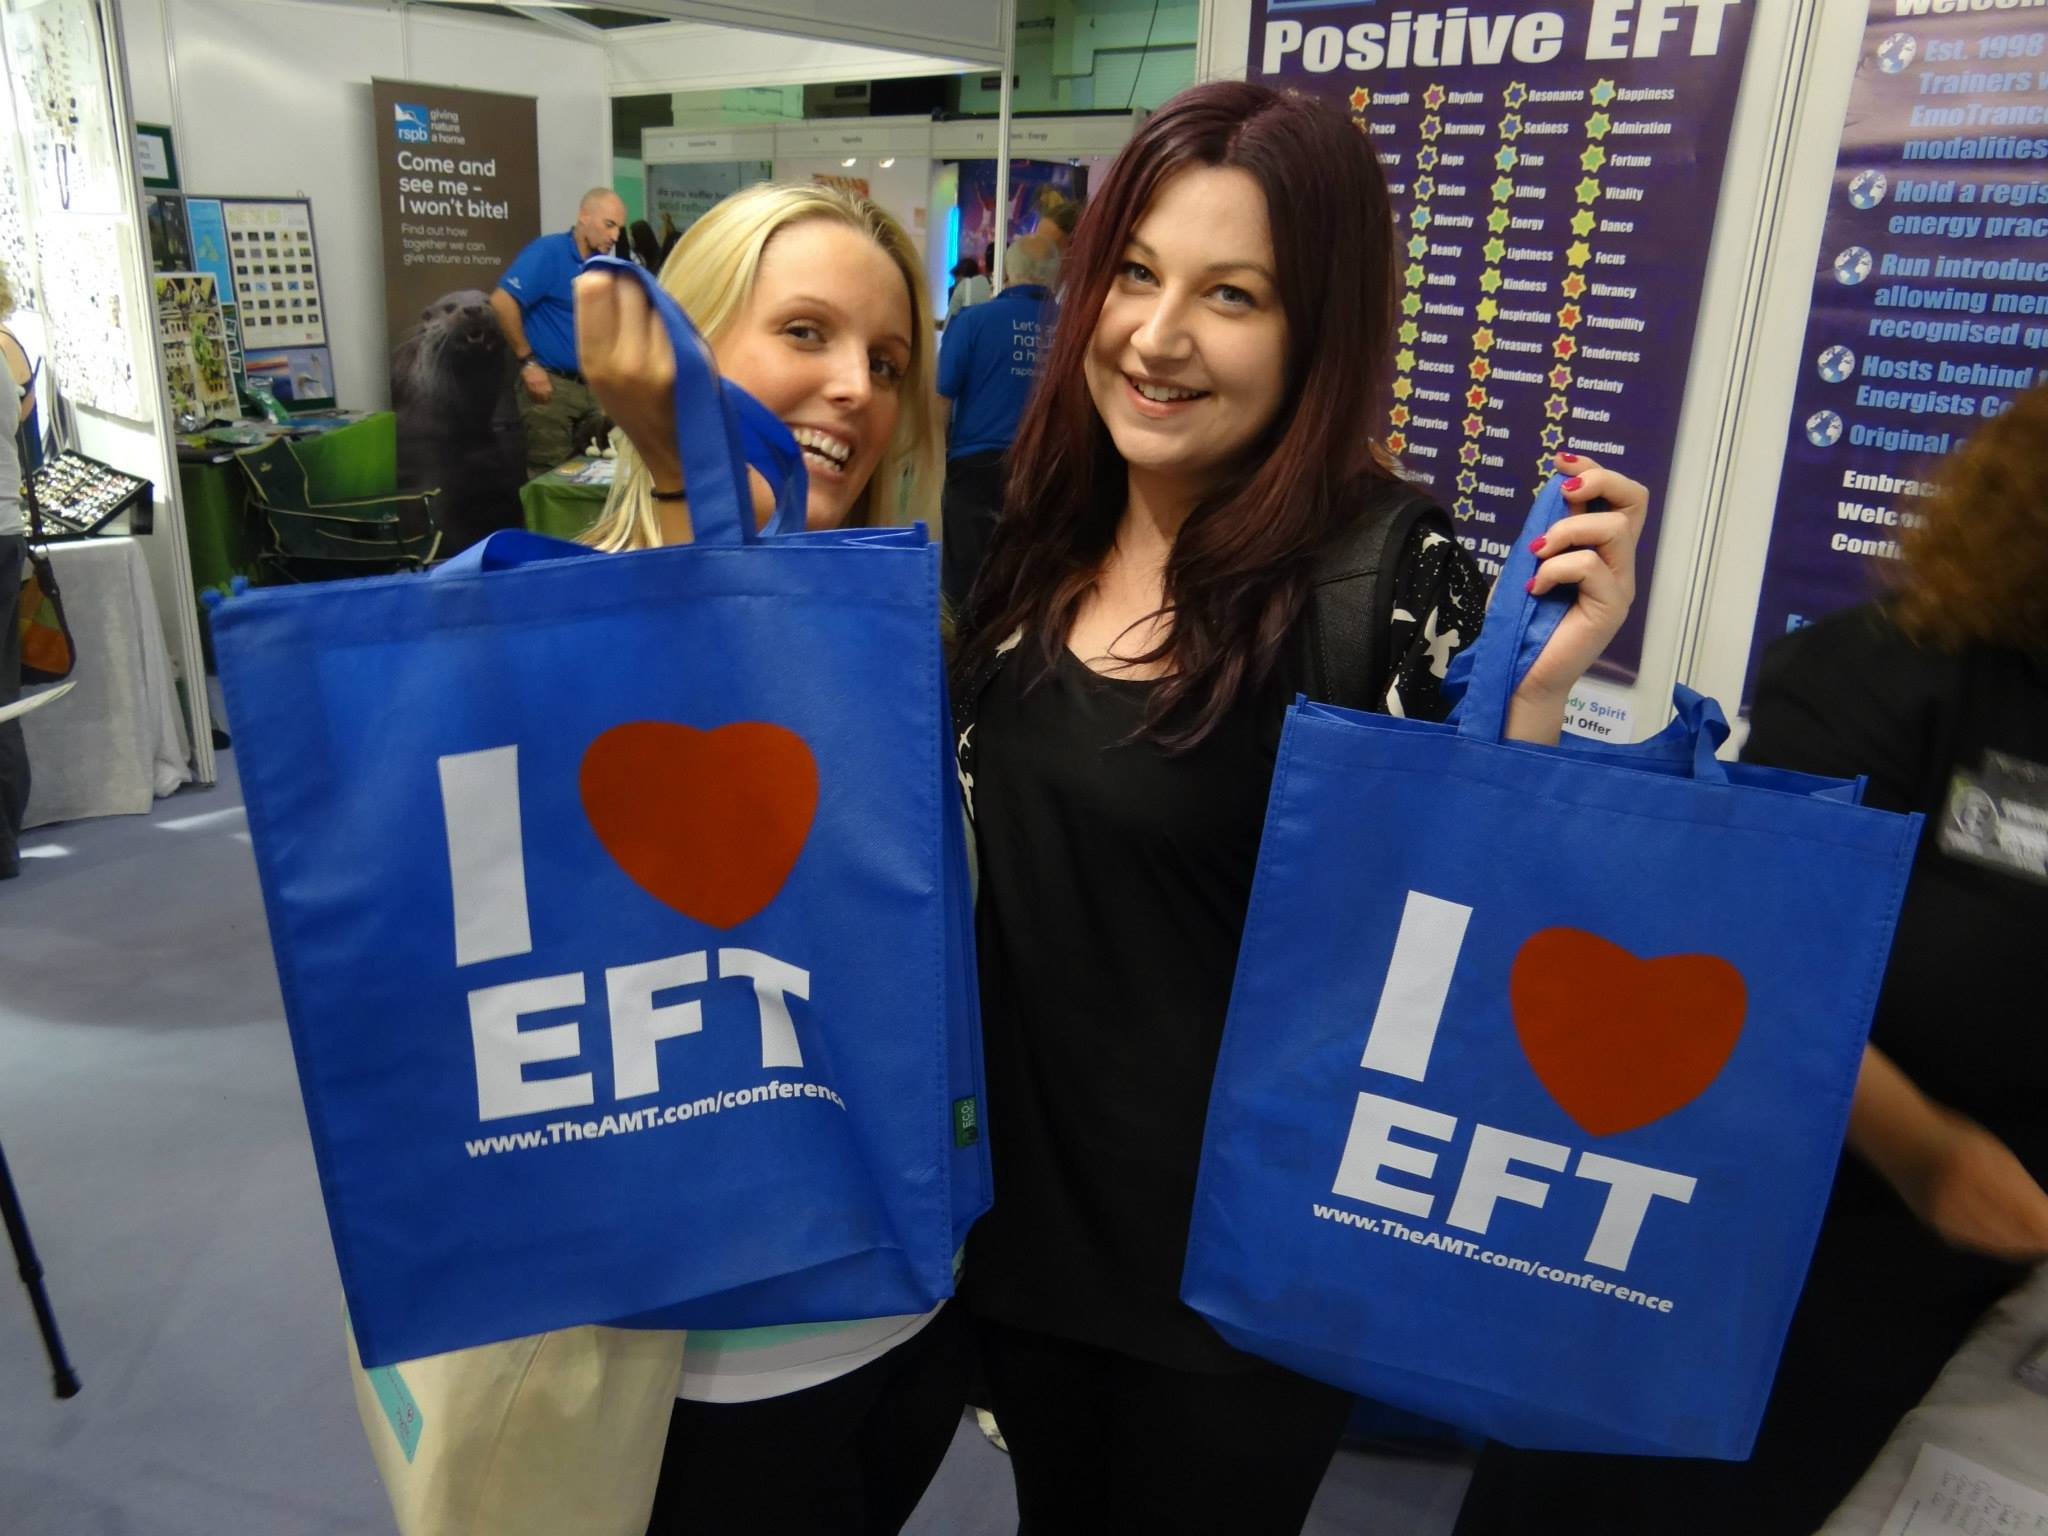 Everyone Loves EFT